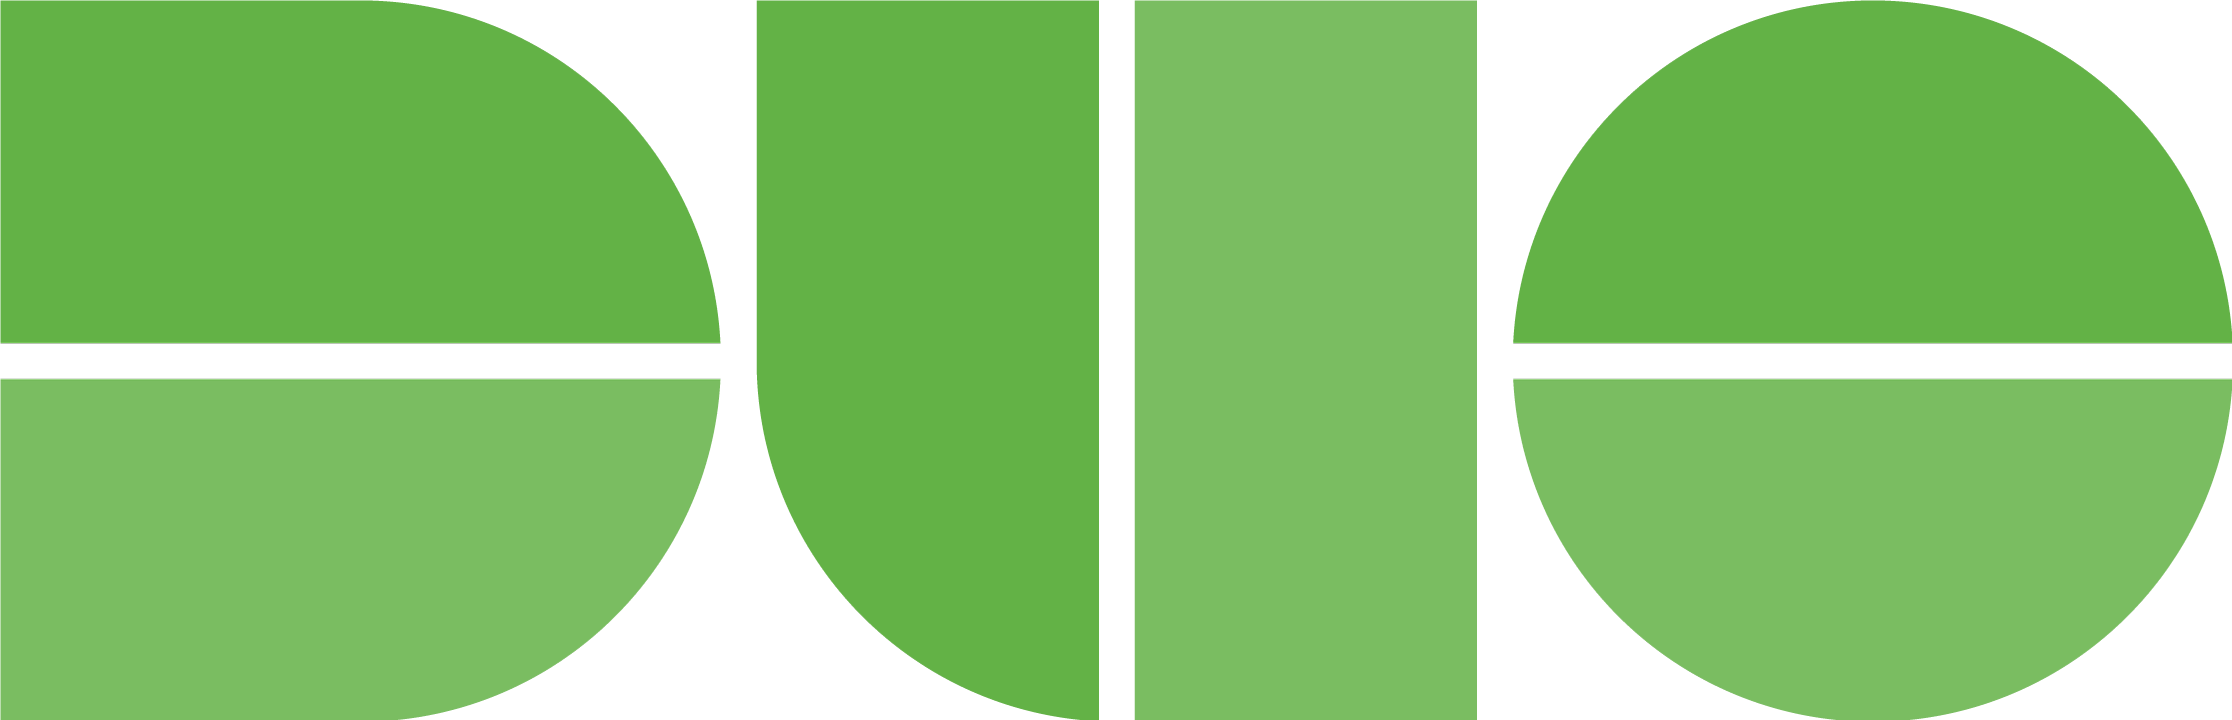 Duo Logo - Green (3).png